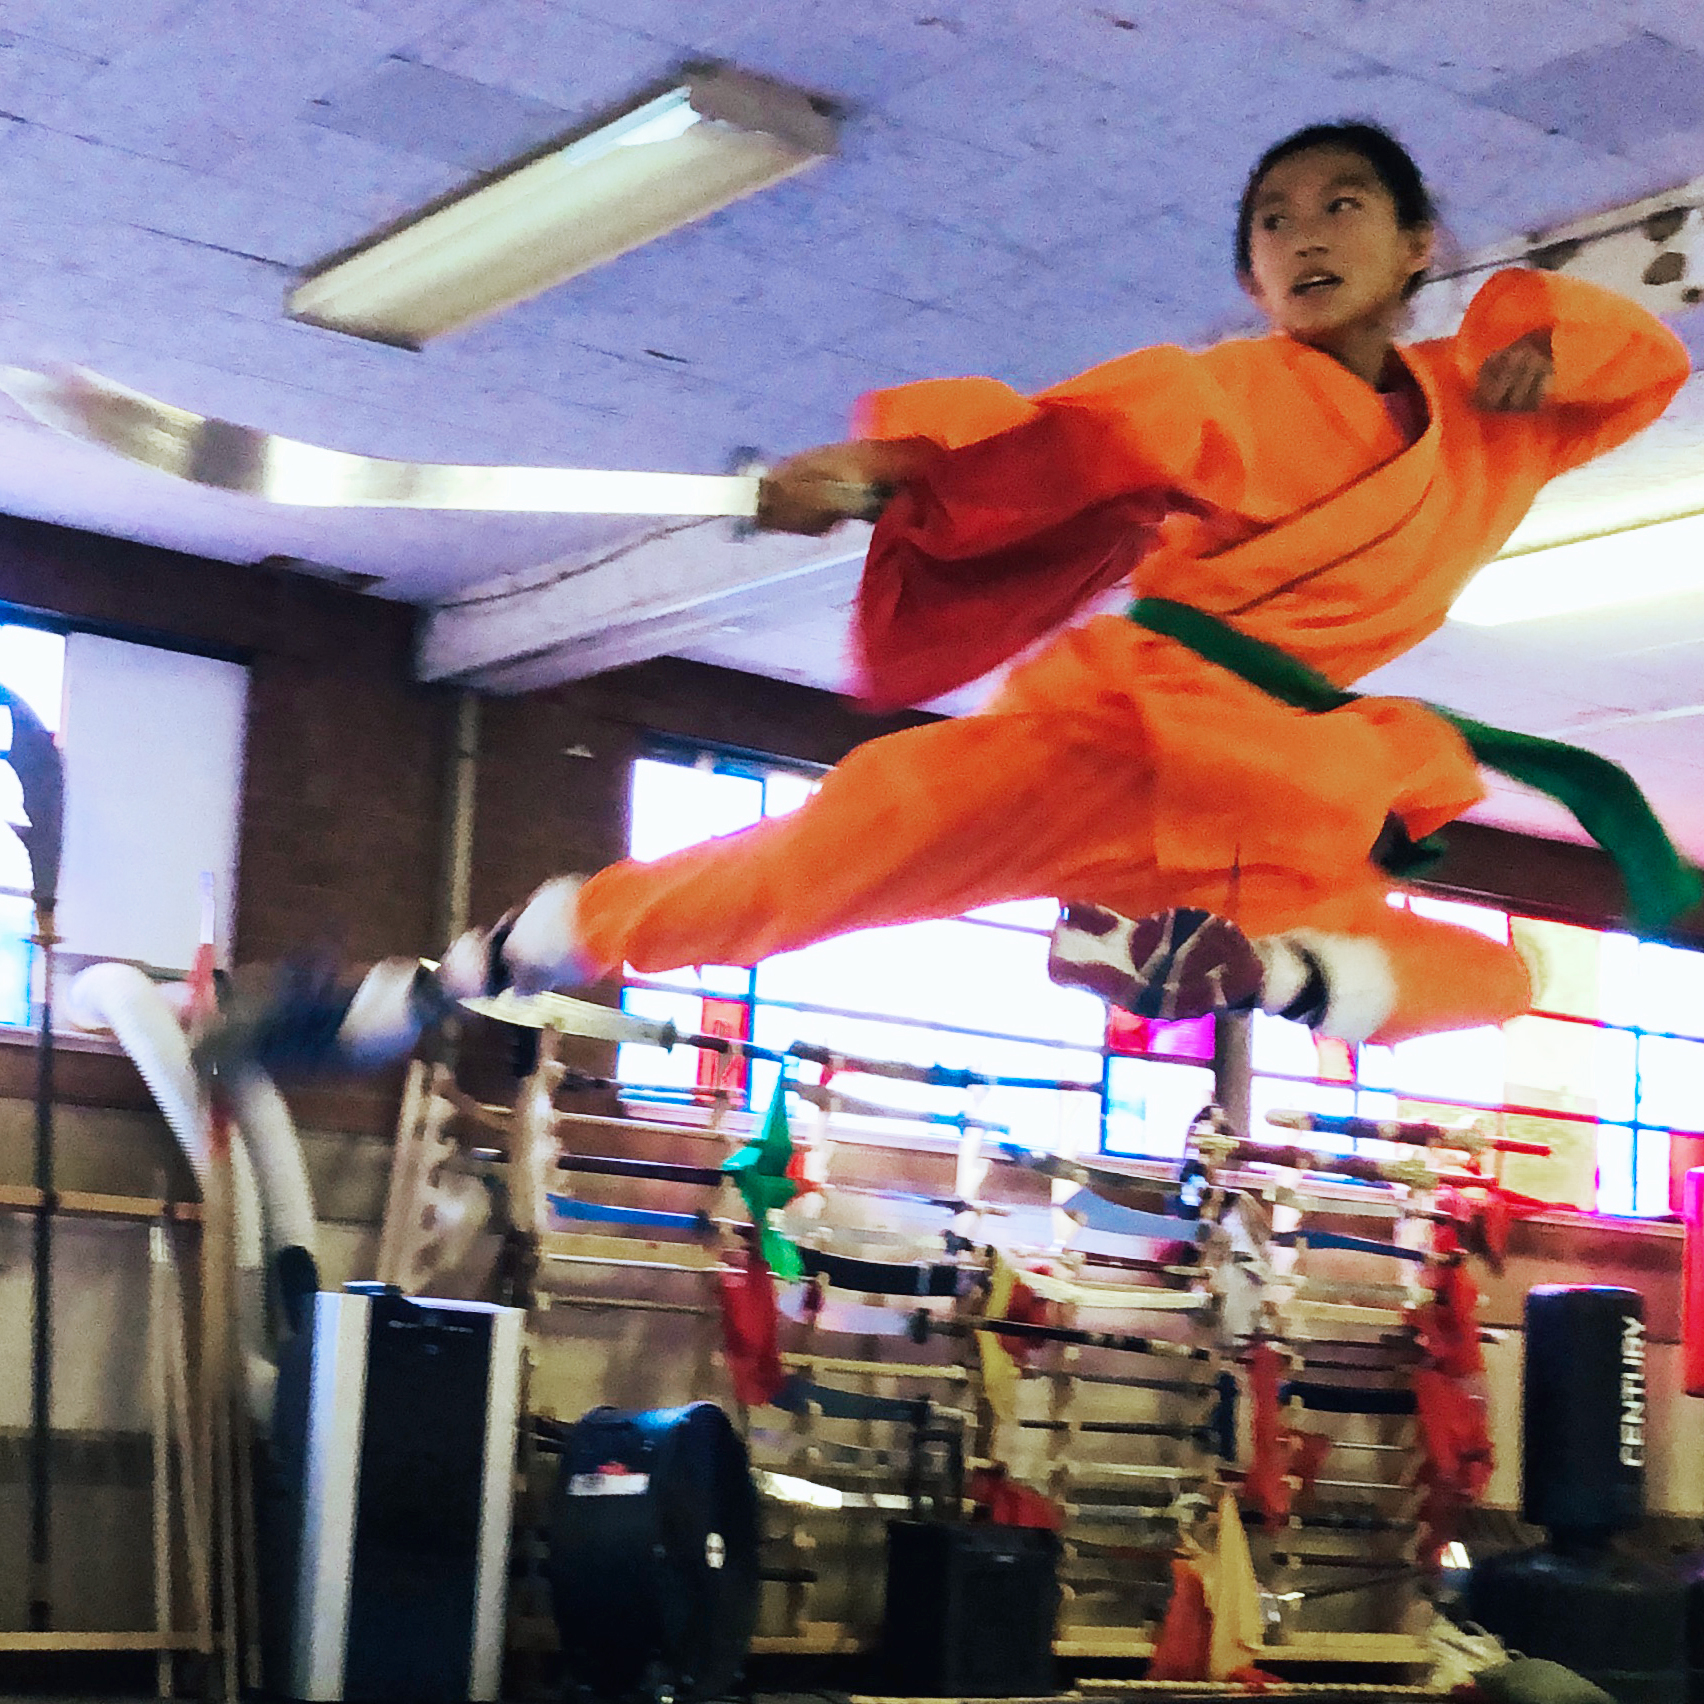 denver-shaolin-kids-sword.jpg